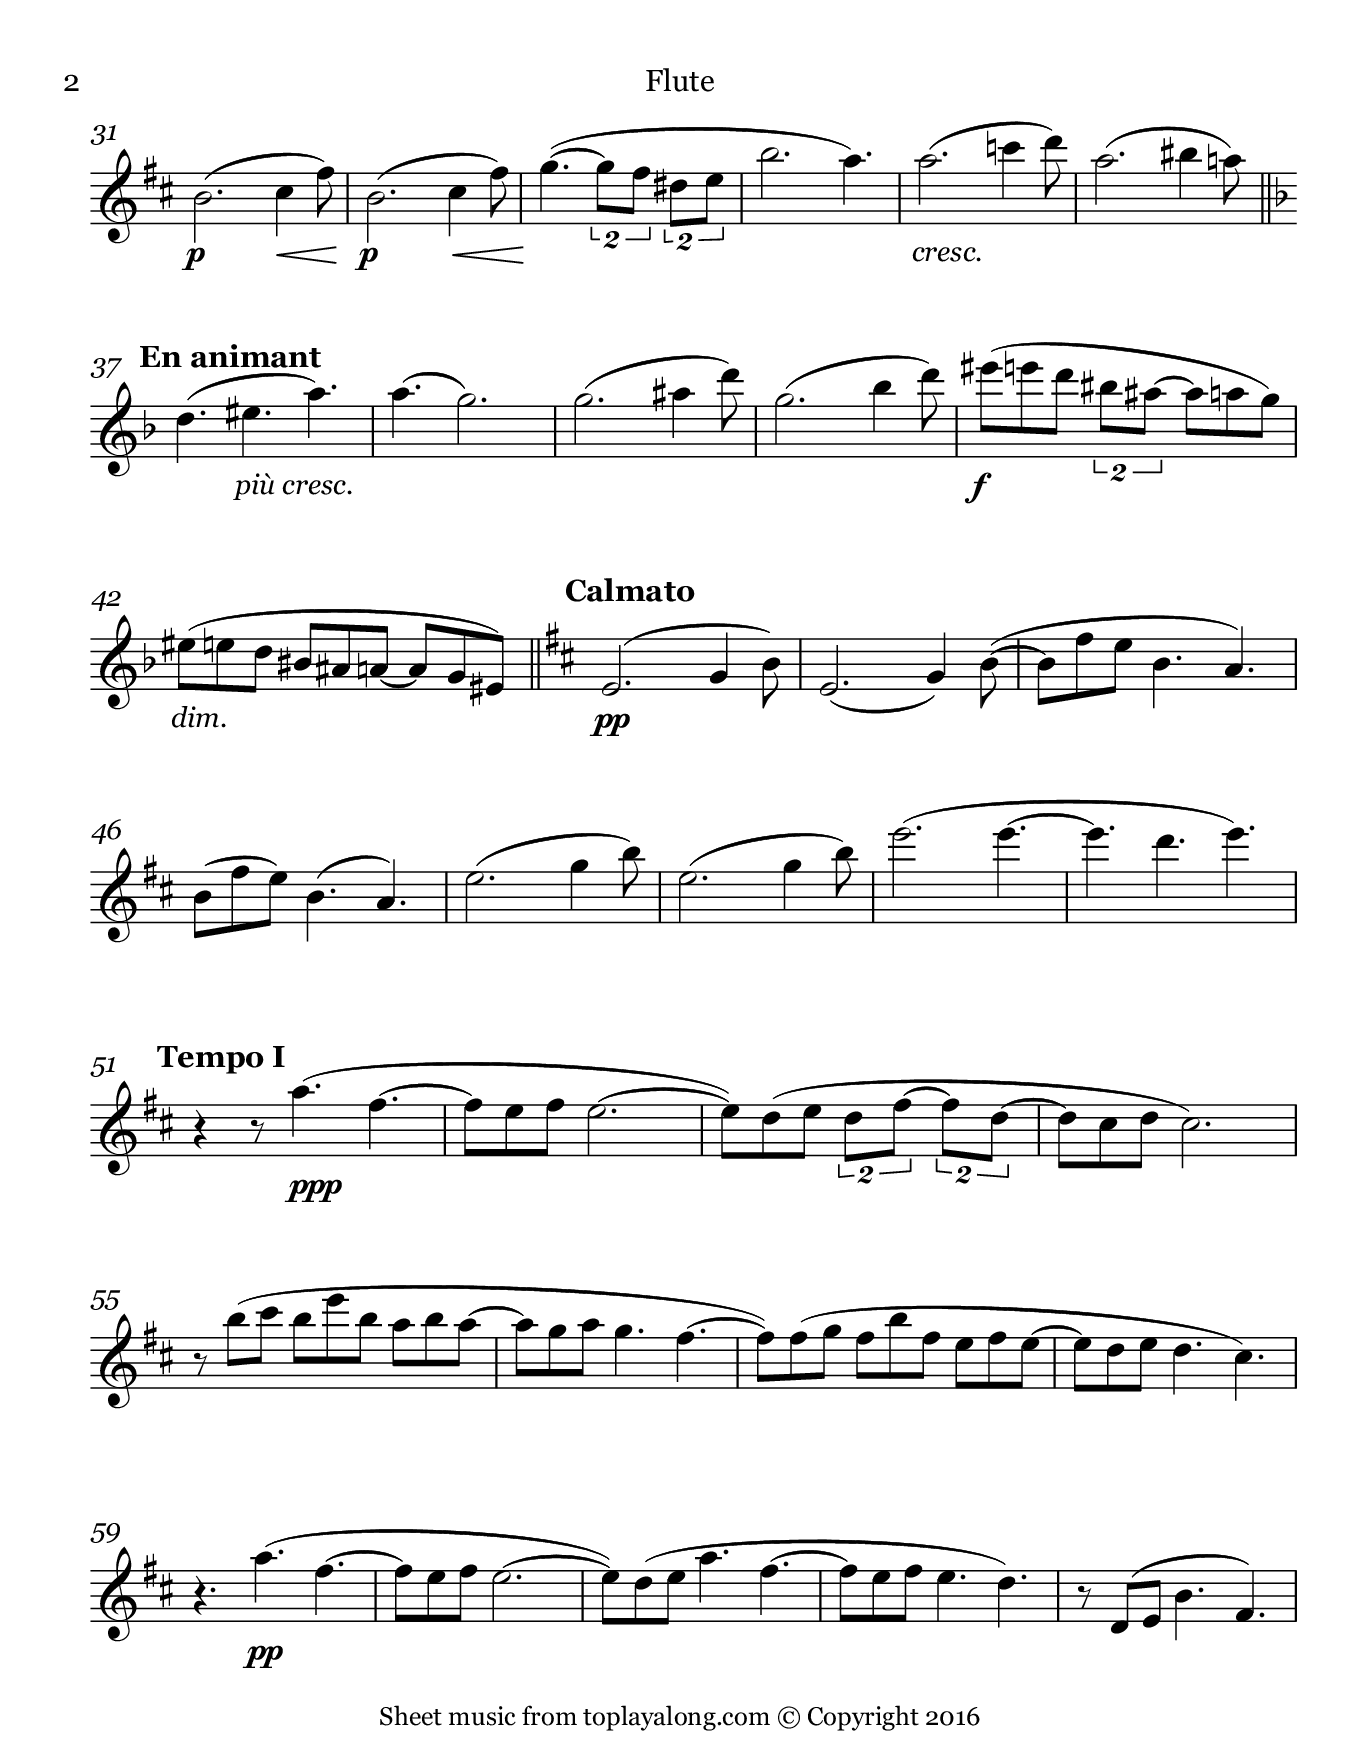 Clair de lune from Suite bergamasque by Debussy. Sheet music for Flute, page 2.